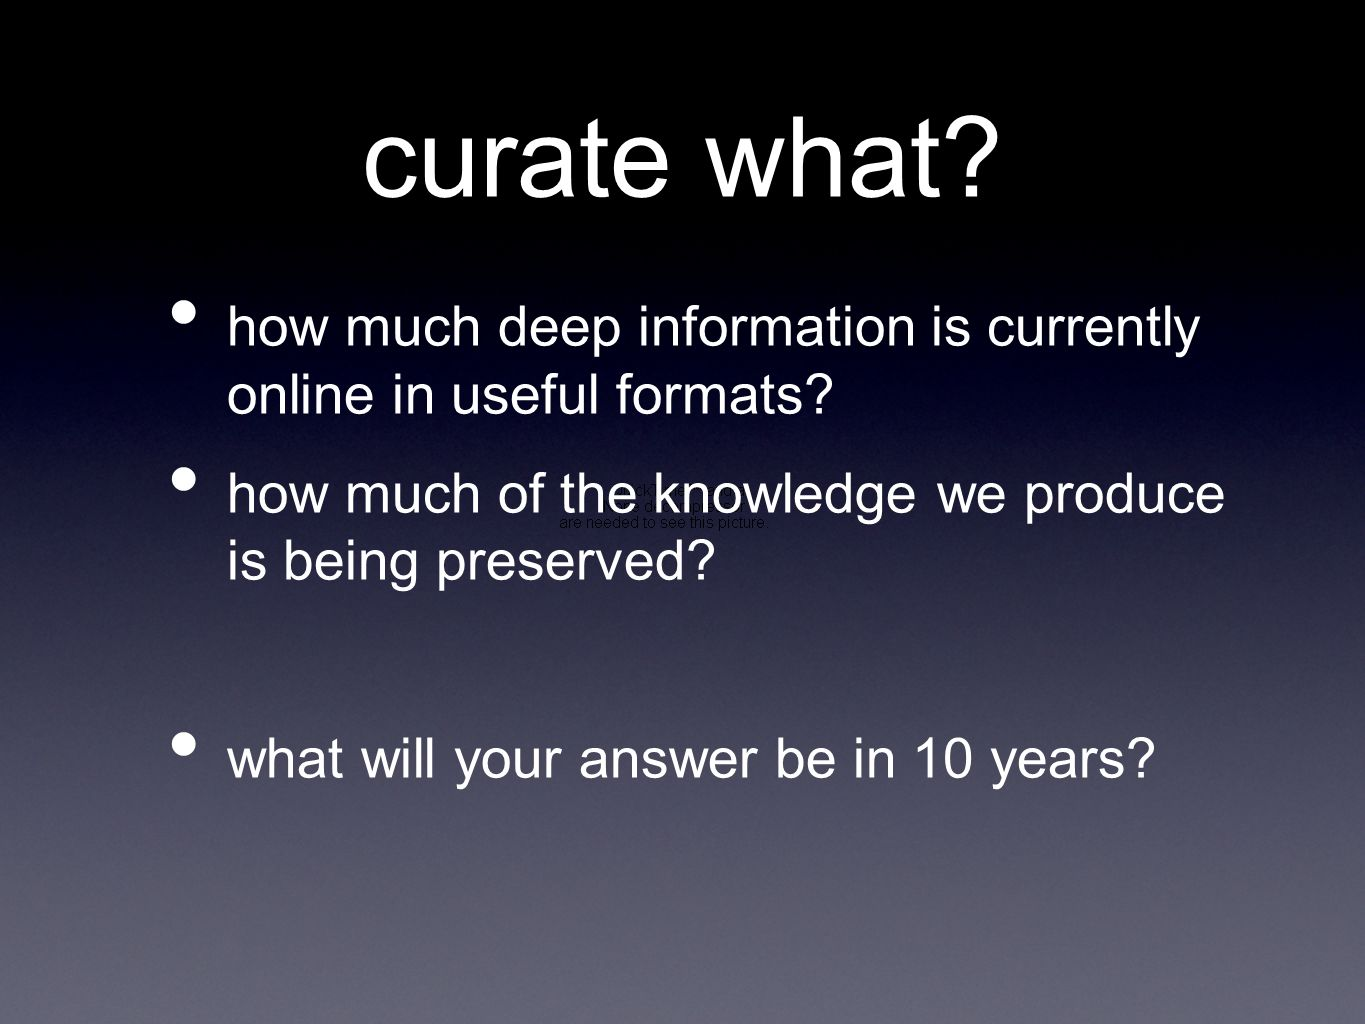 curate what. how much deep information is currently online in useful formats.